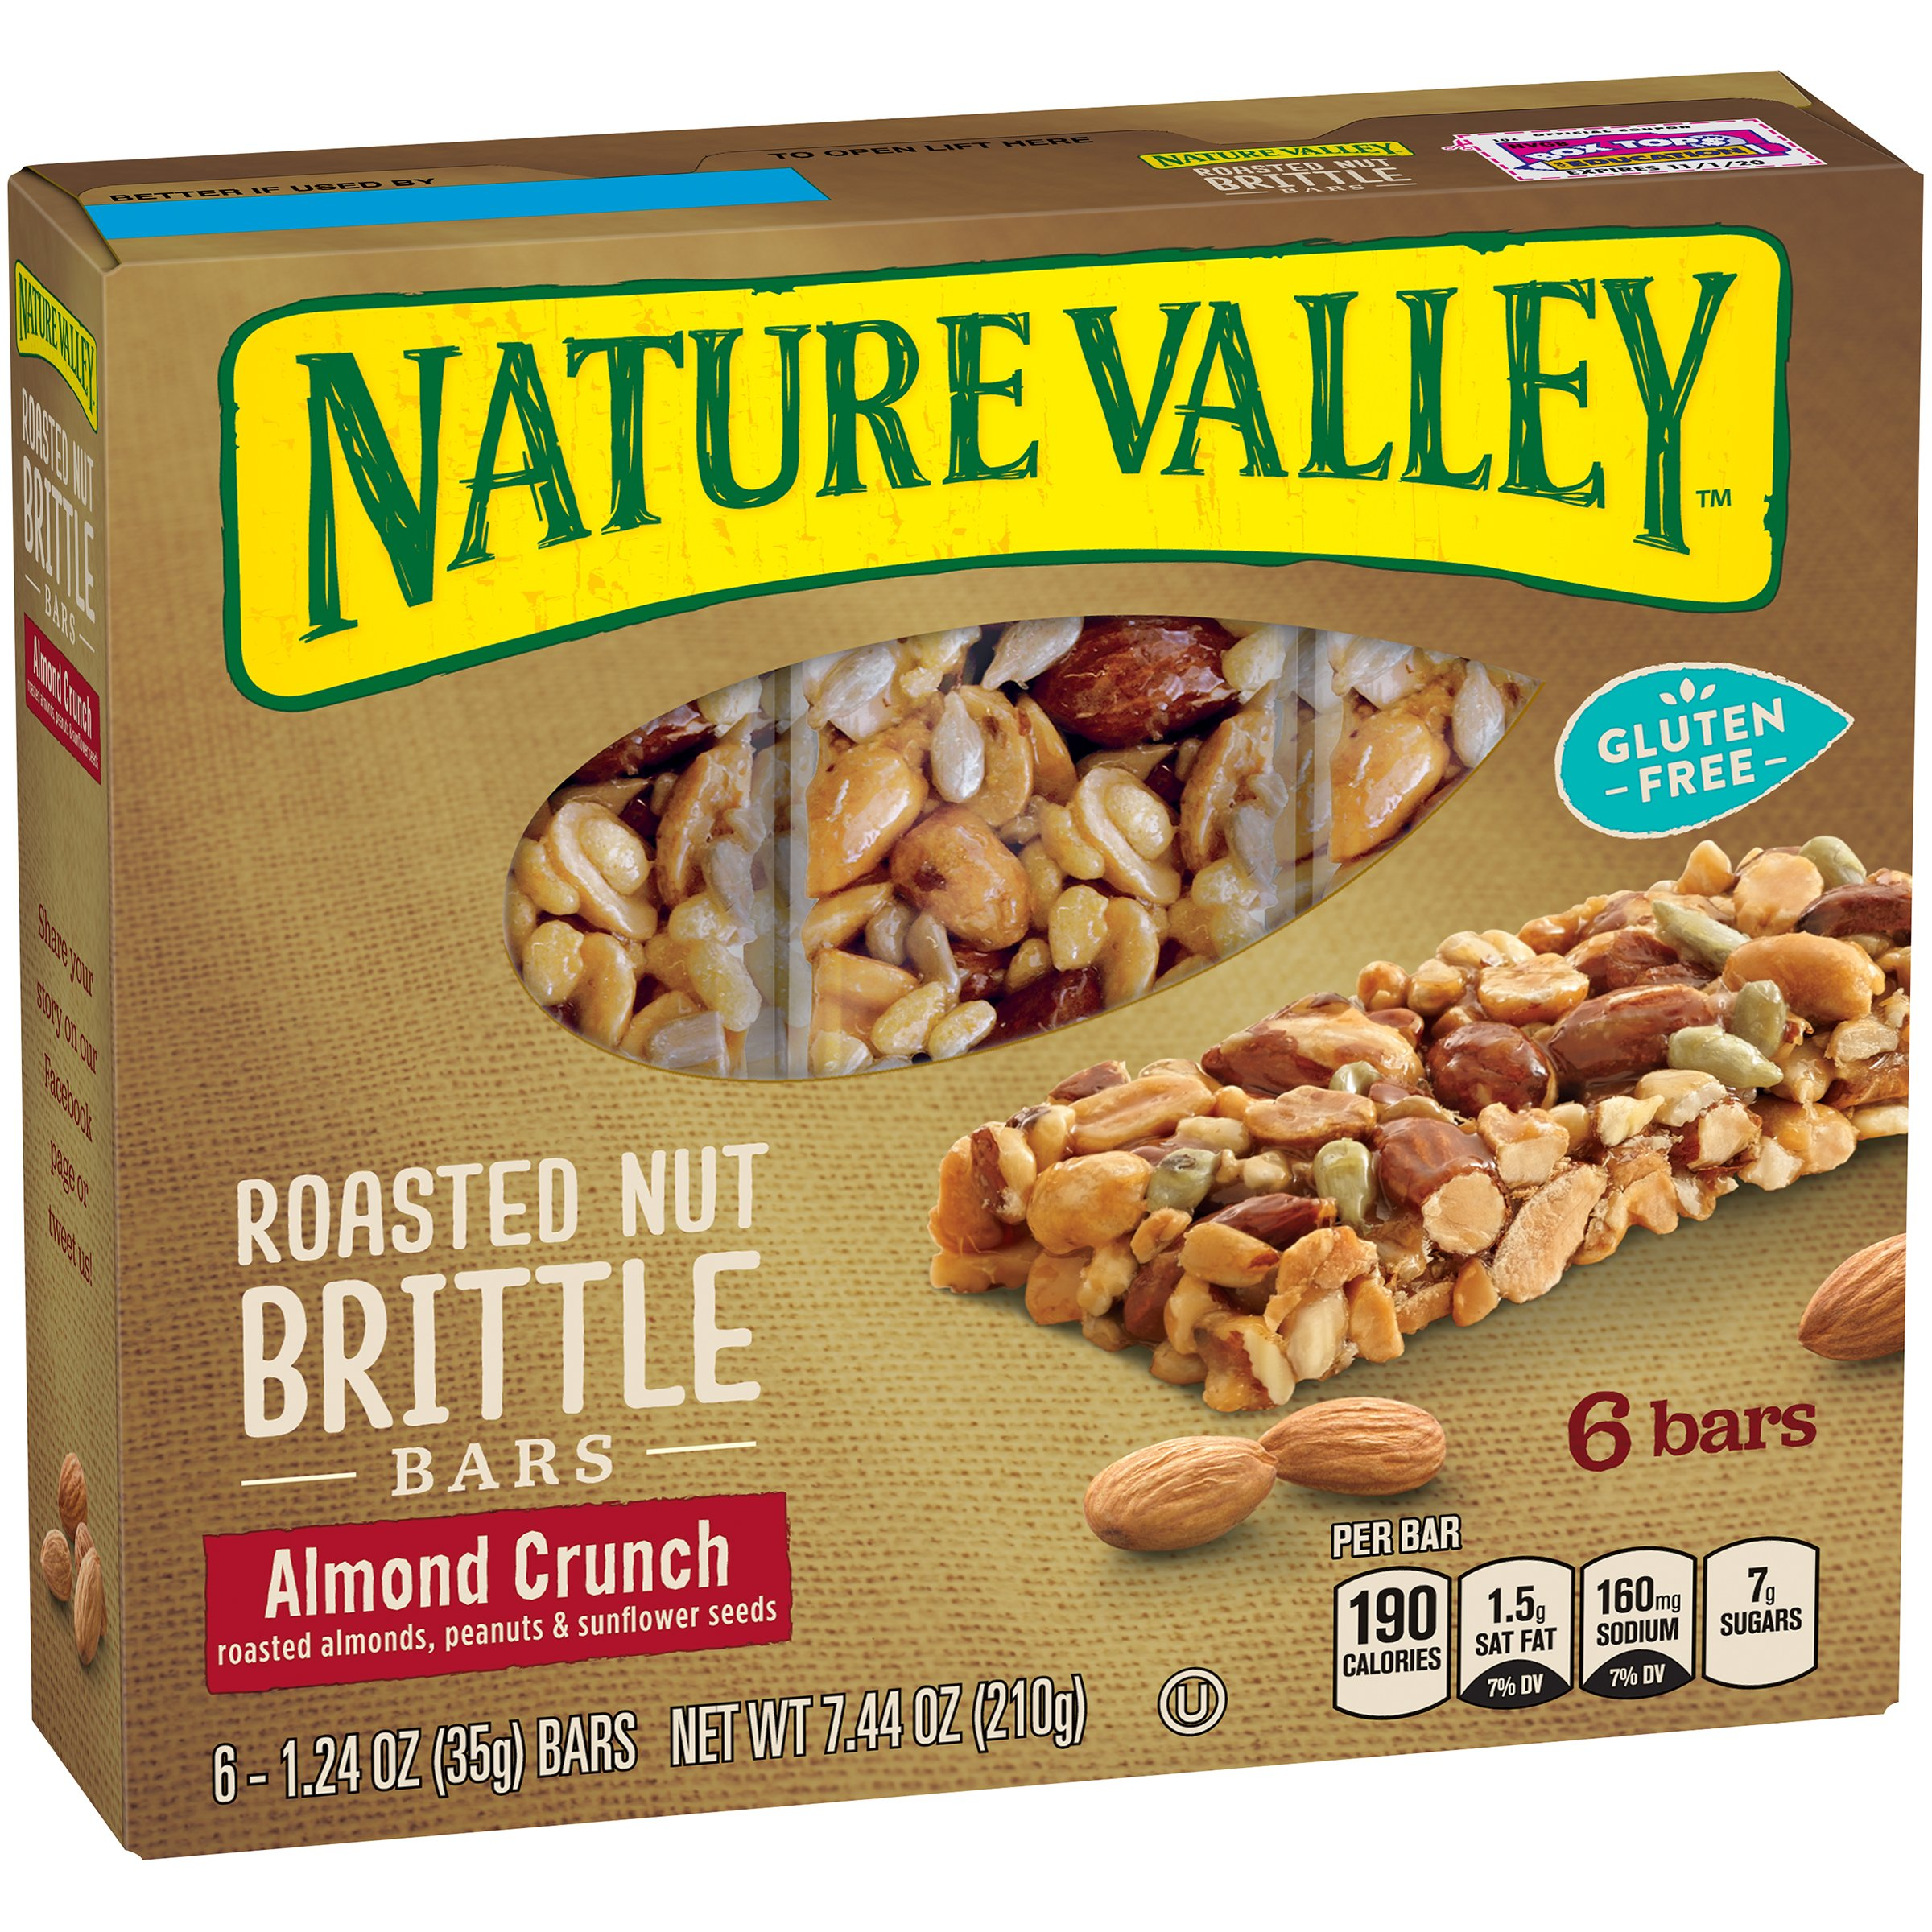 Nature Valley, Roasted Nut Crunch, Almond Crunch (Roasted Almonds, Peanuts & Sunflower Seeds), 6 Count, 7.2oz Box (Pack of 4) (Almond Crunch)